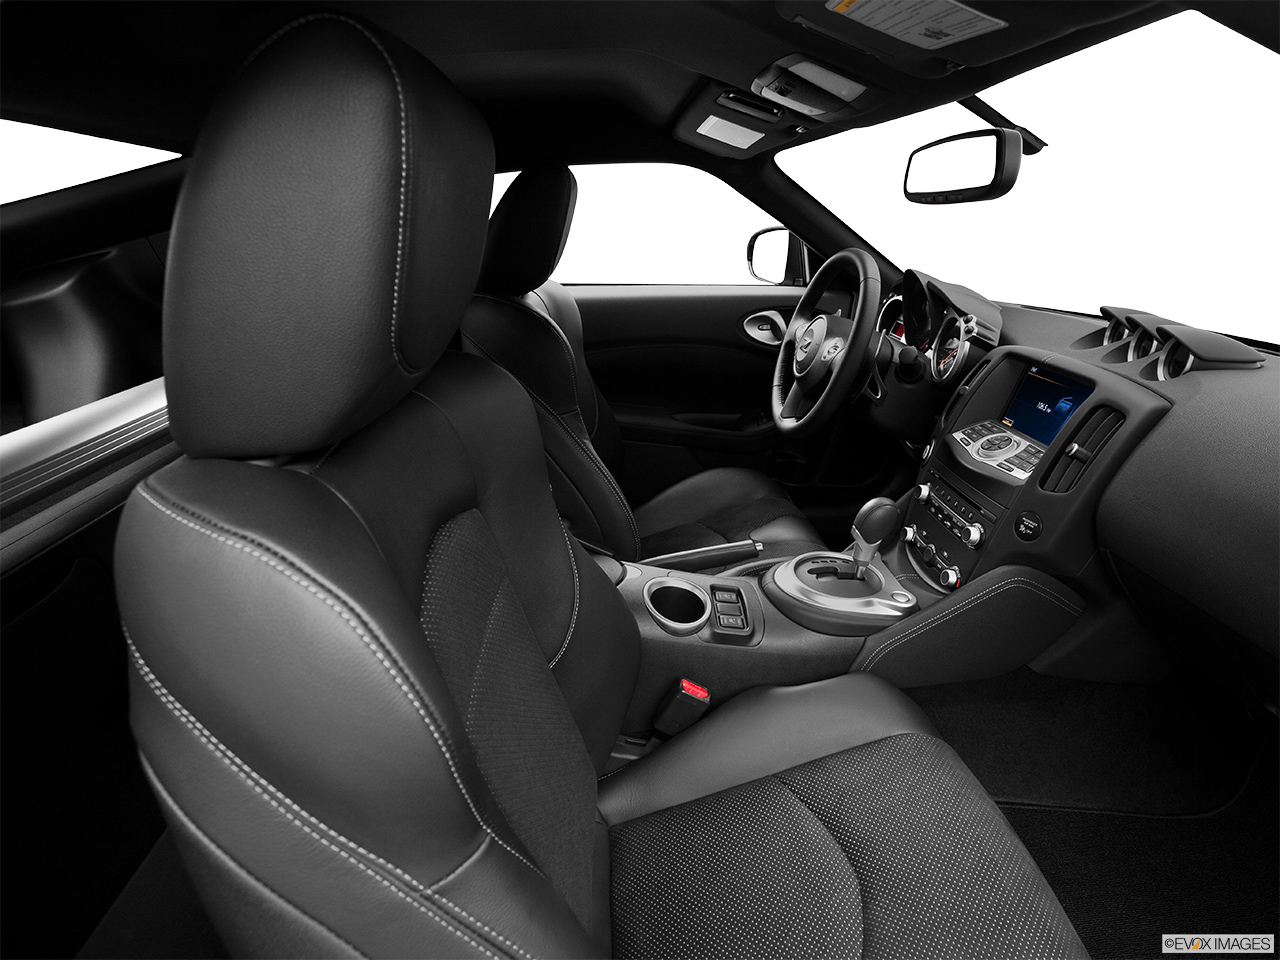 2015 Nissan 370z Manual Sport Coupe Front Angle View 2015